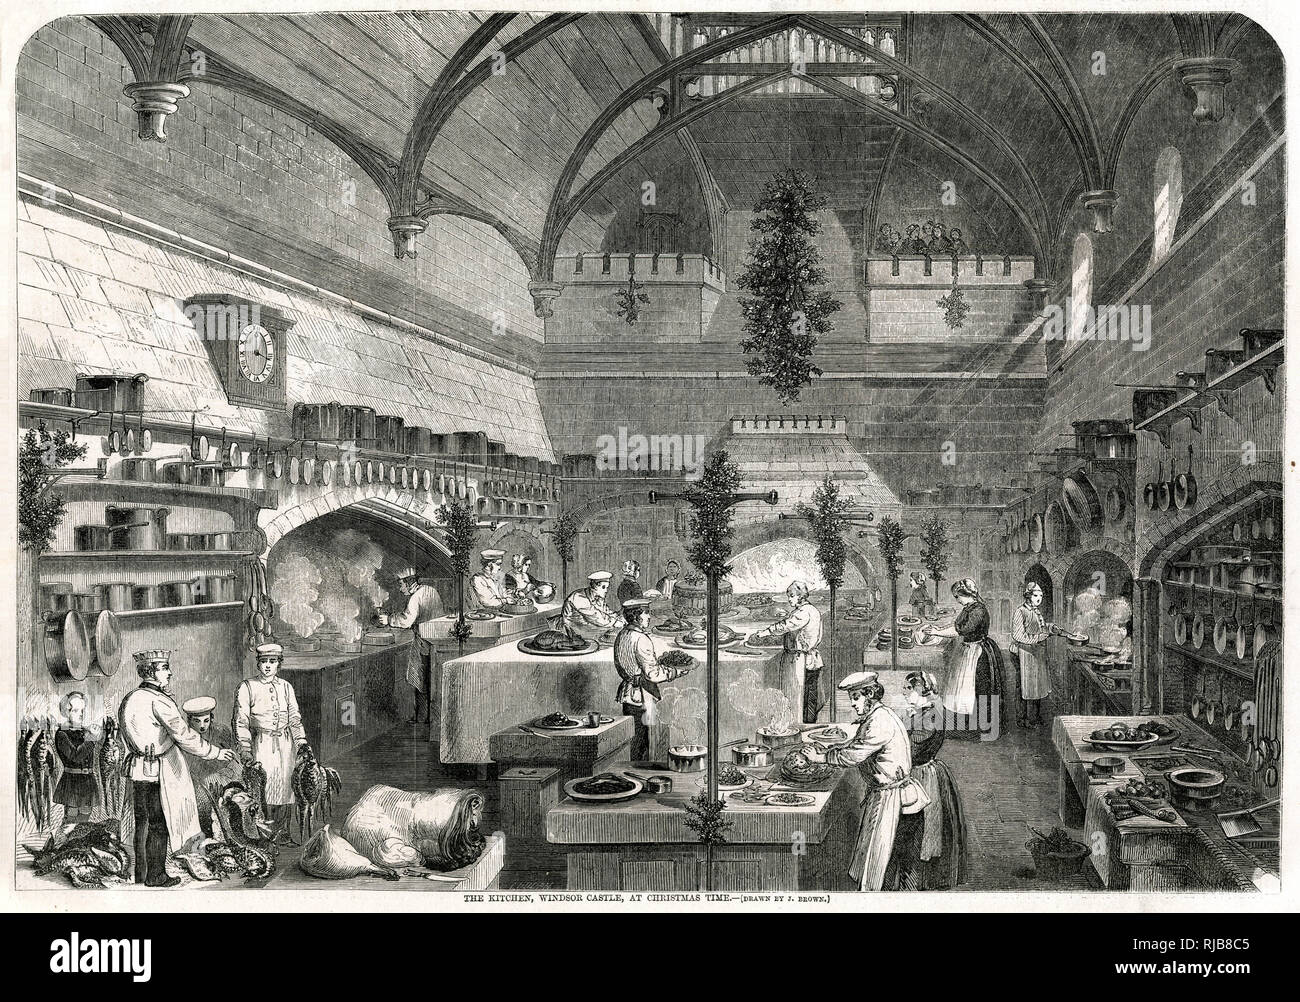 Christmas time at Windsor Castle, cooks preparing for the Royal banquet. Stock Photo